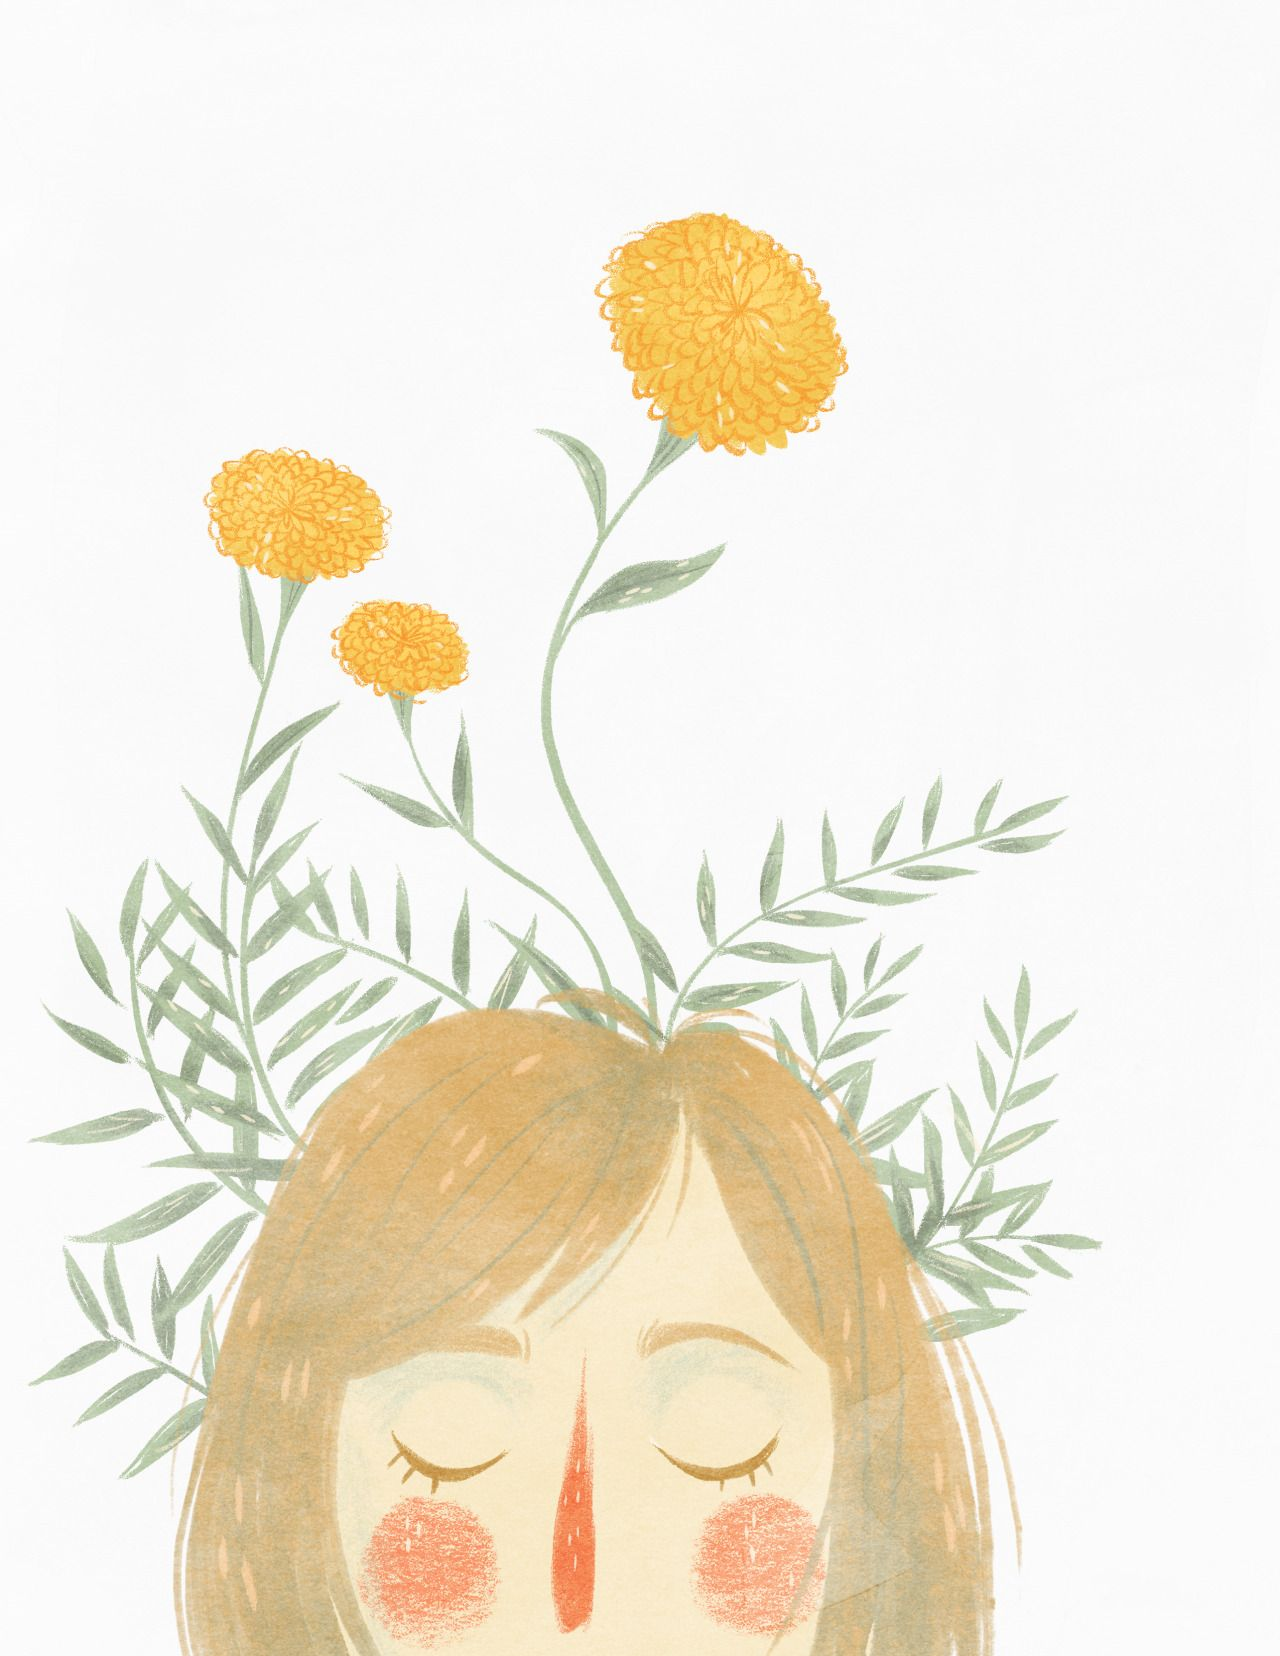 taryndraws:  Happy first day of Spring and International Happiness Day, everyone! Go get a cup of your favorite drink and do something you love today. You deserve it!